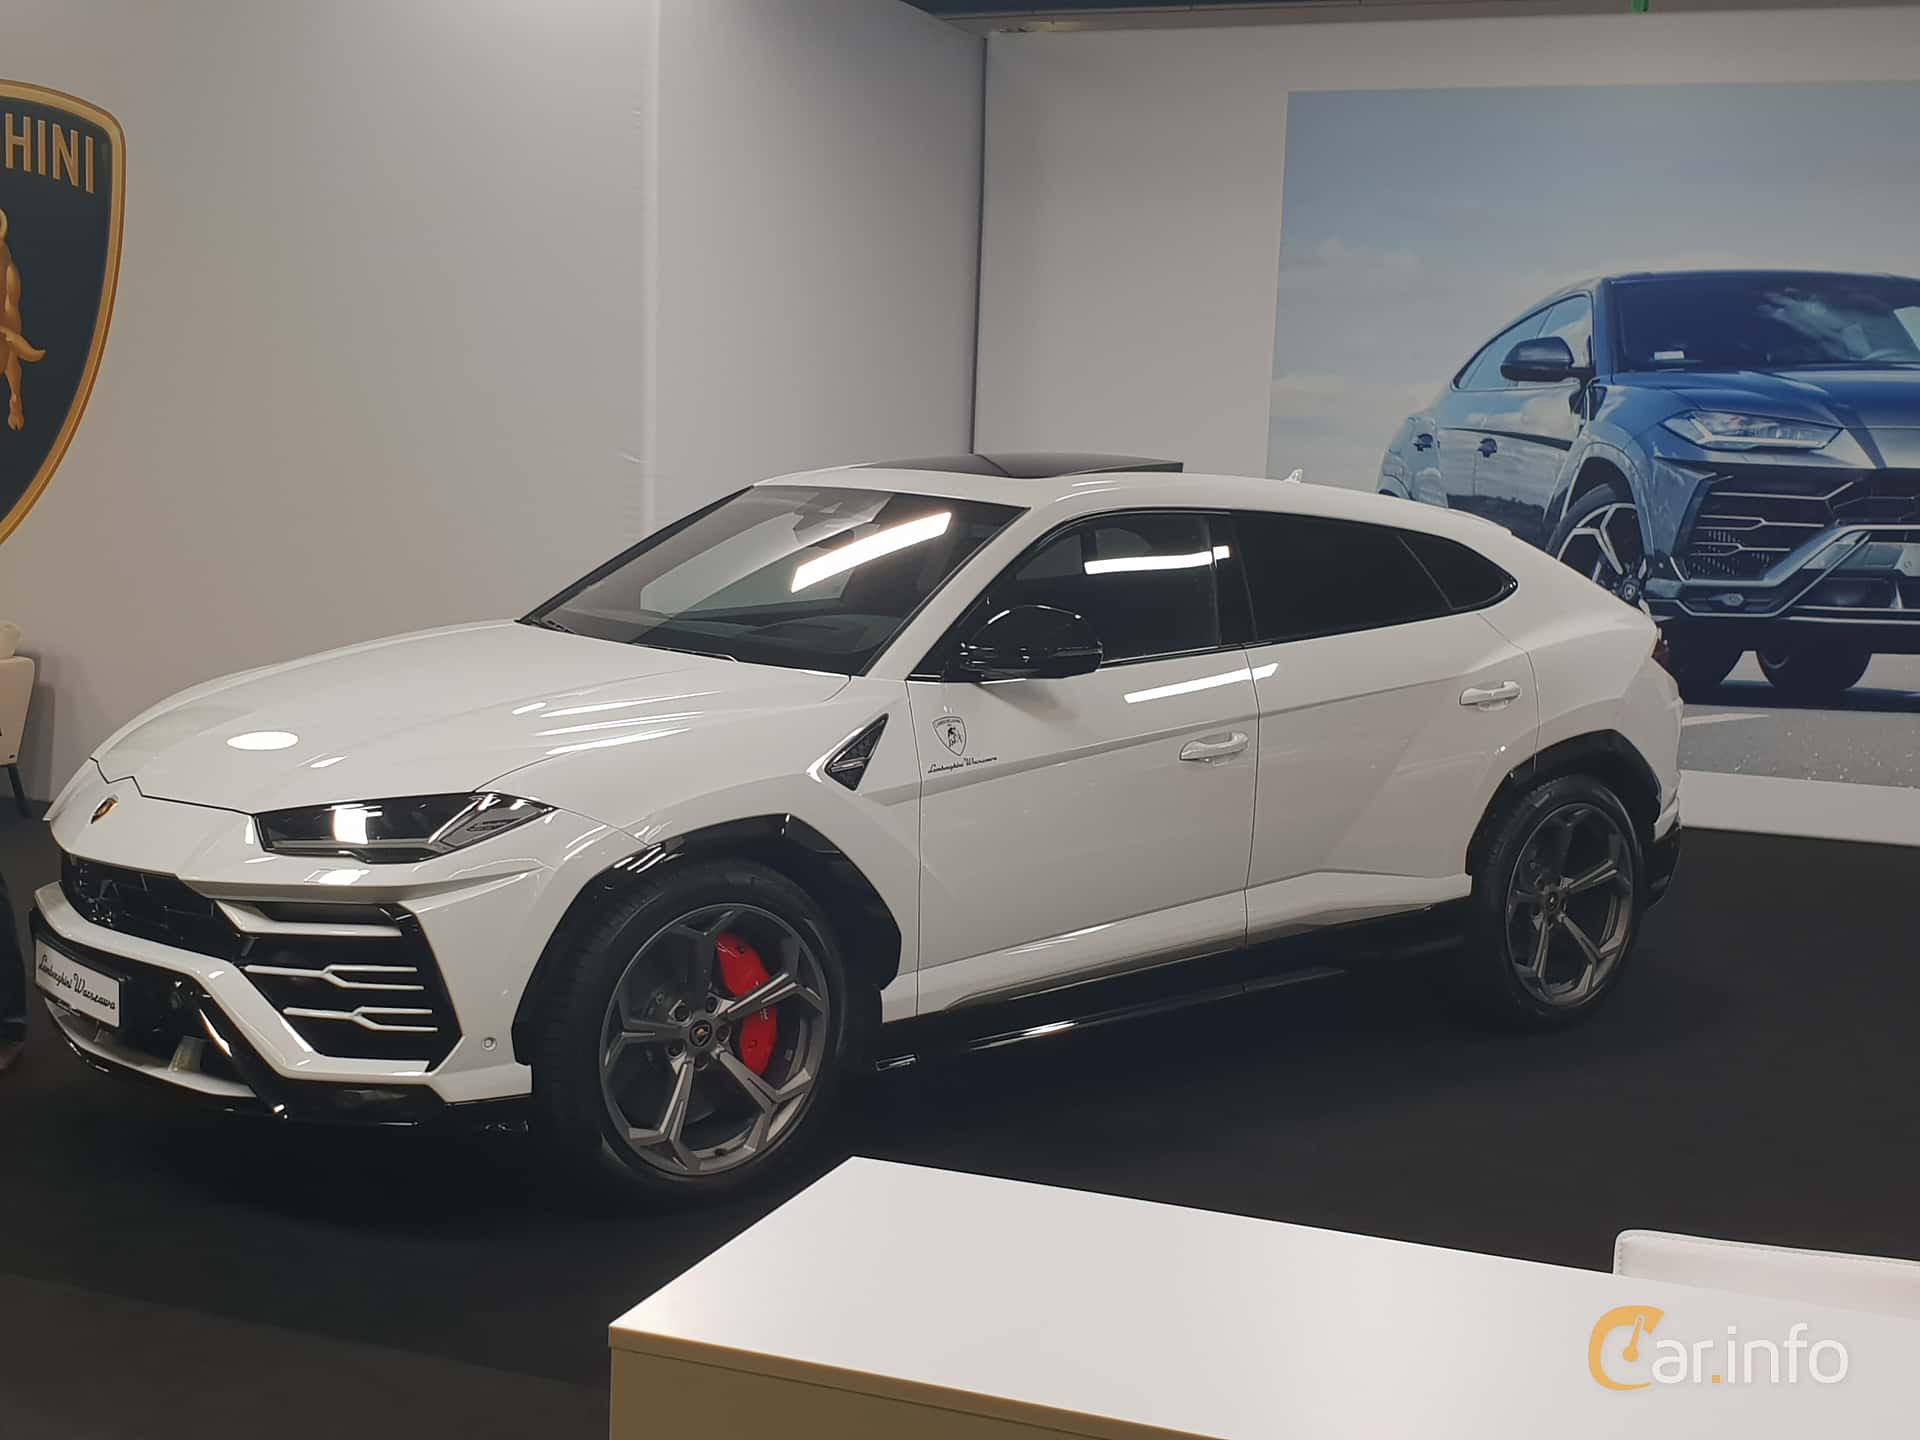 Front/Side  of Lamborghini Urus 4.0 V8 AWD Automatic, 650ps, 2018 at Warsawa Motorshow 2018